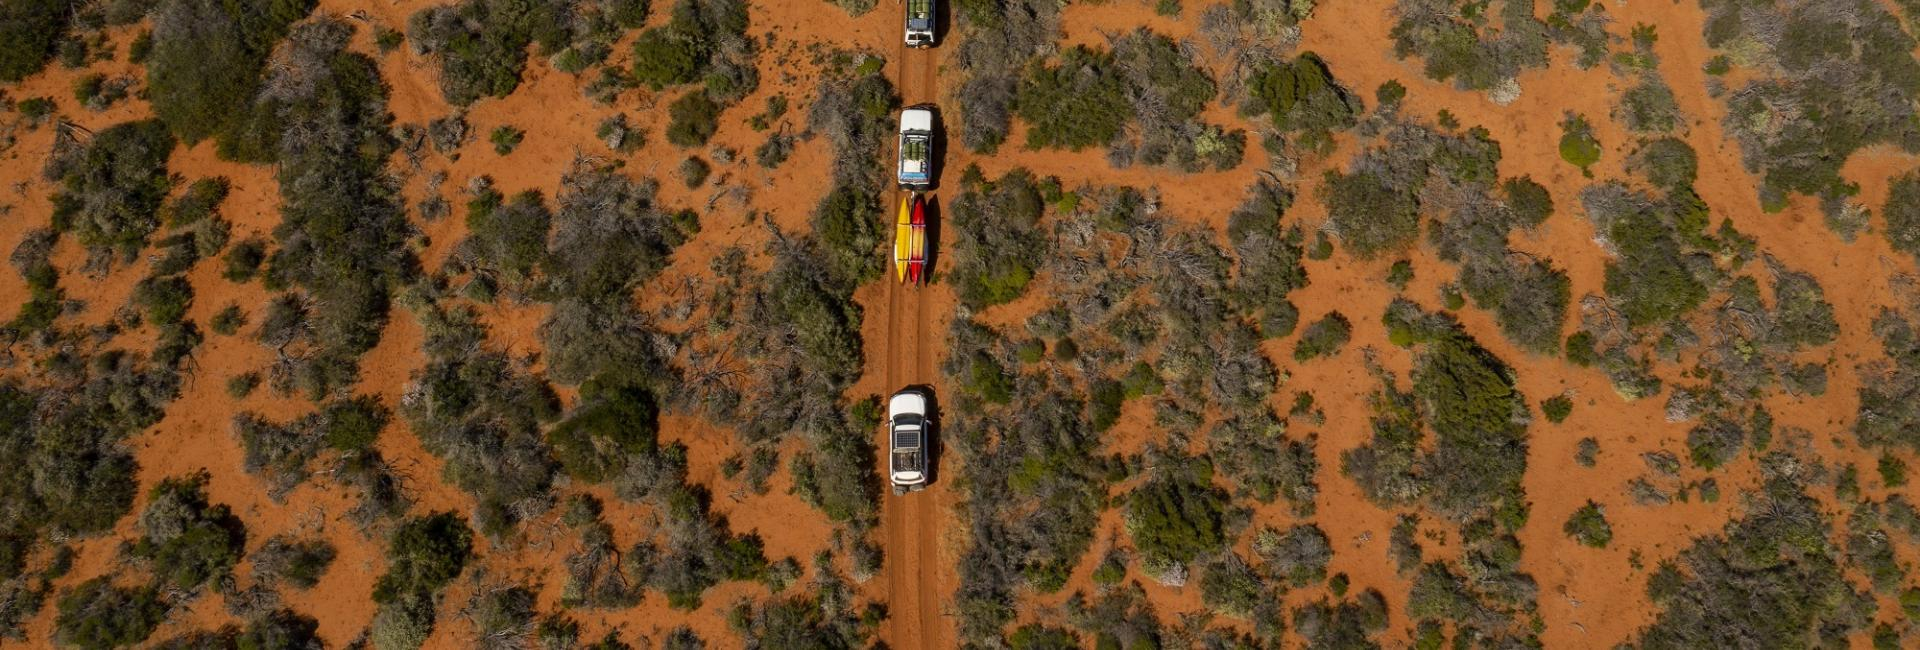 Shark Bay red dirt drive car aerial